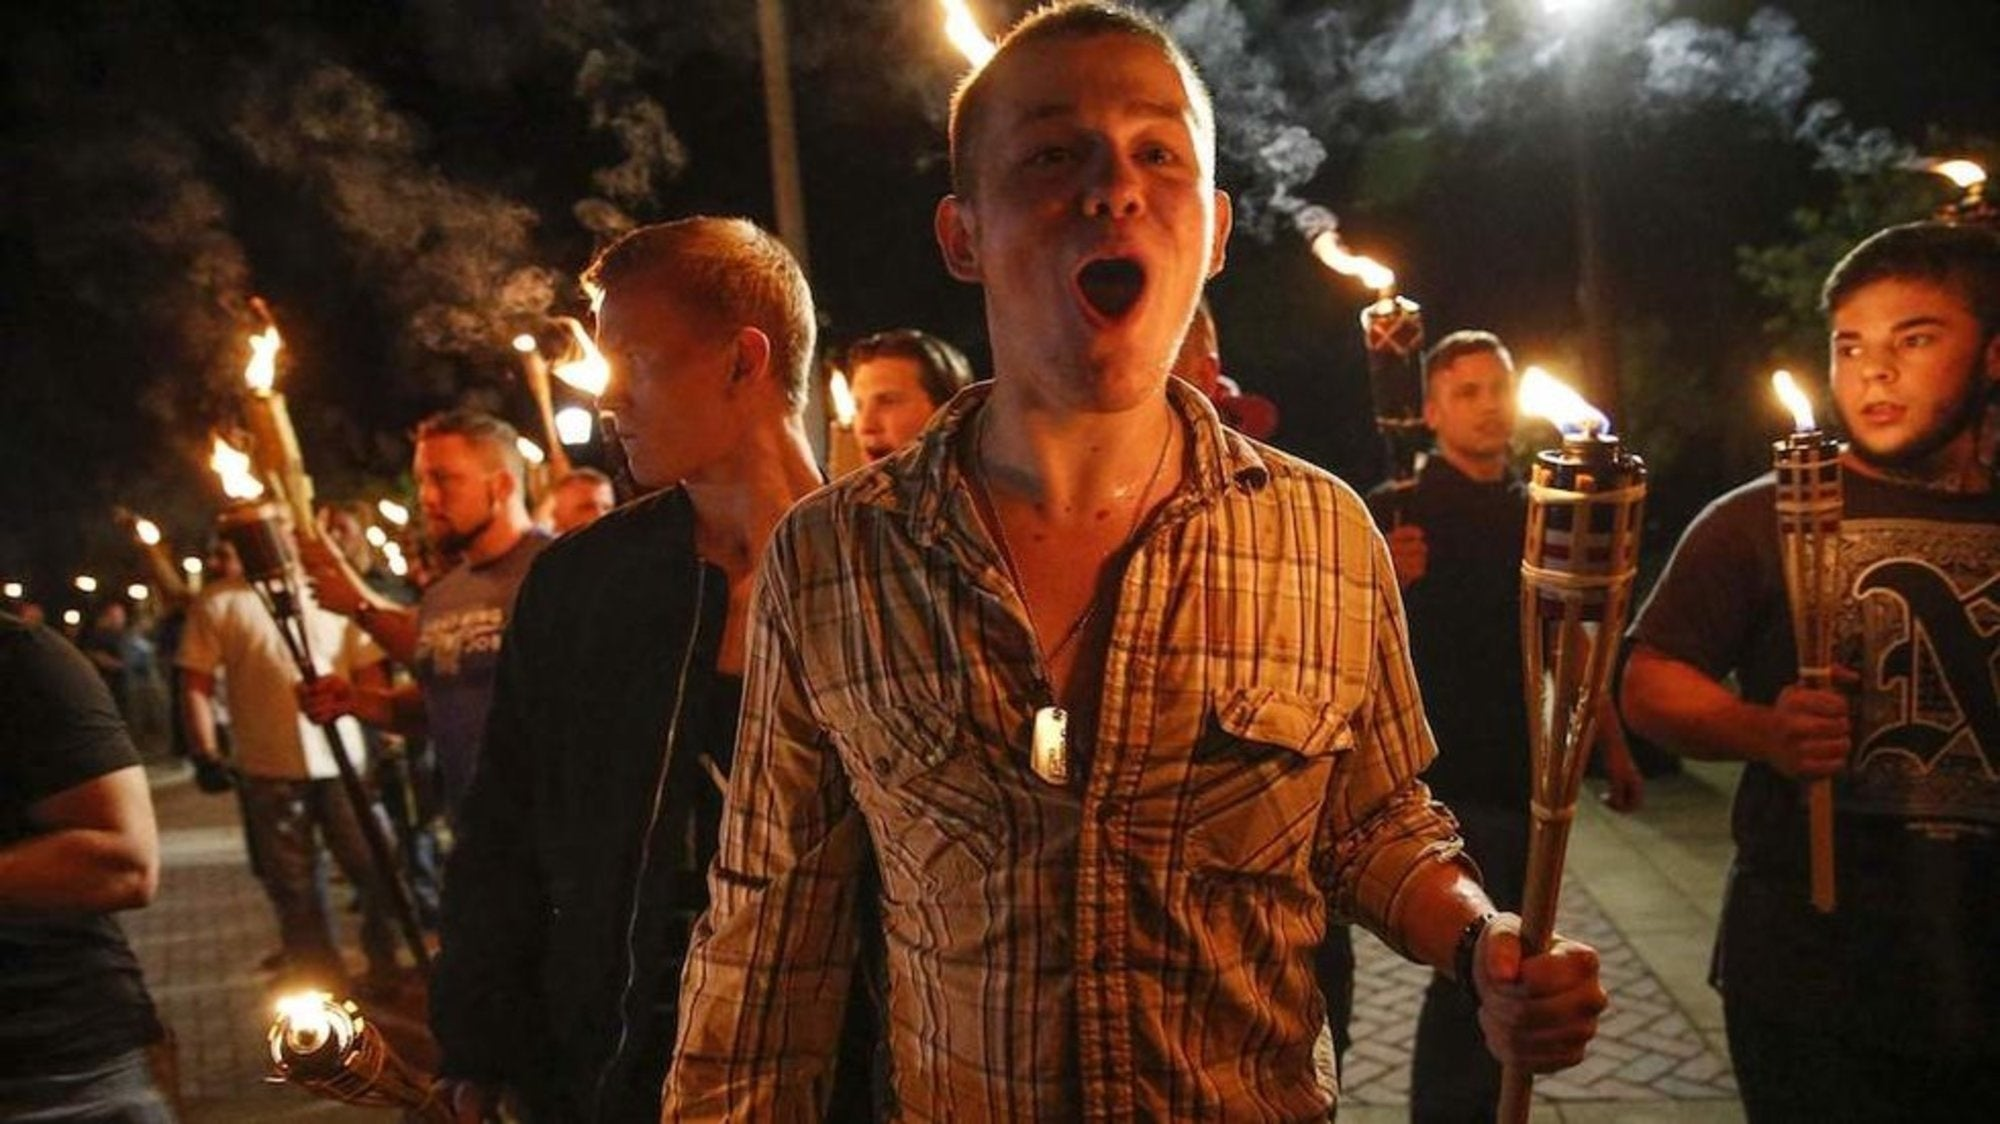 Most Americans have no idea how deeply entwined white supremacist groups are in the military